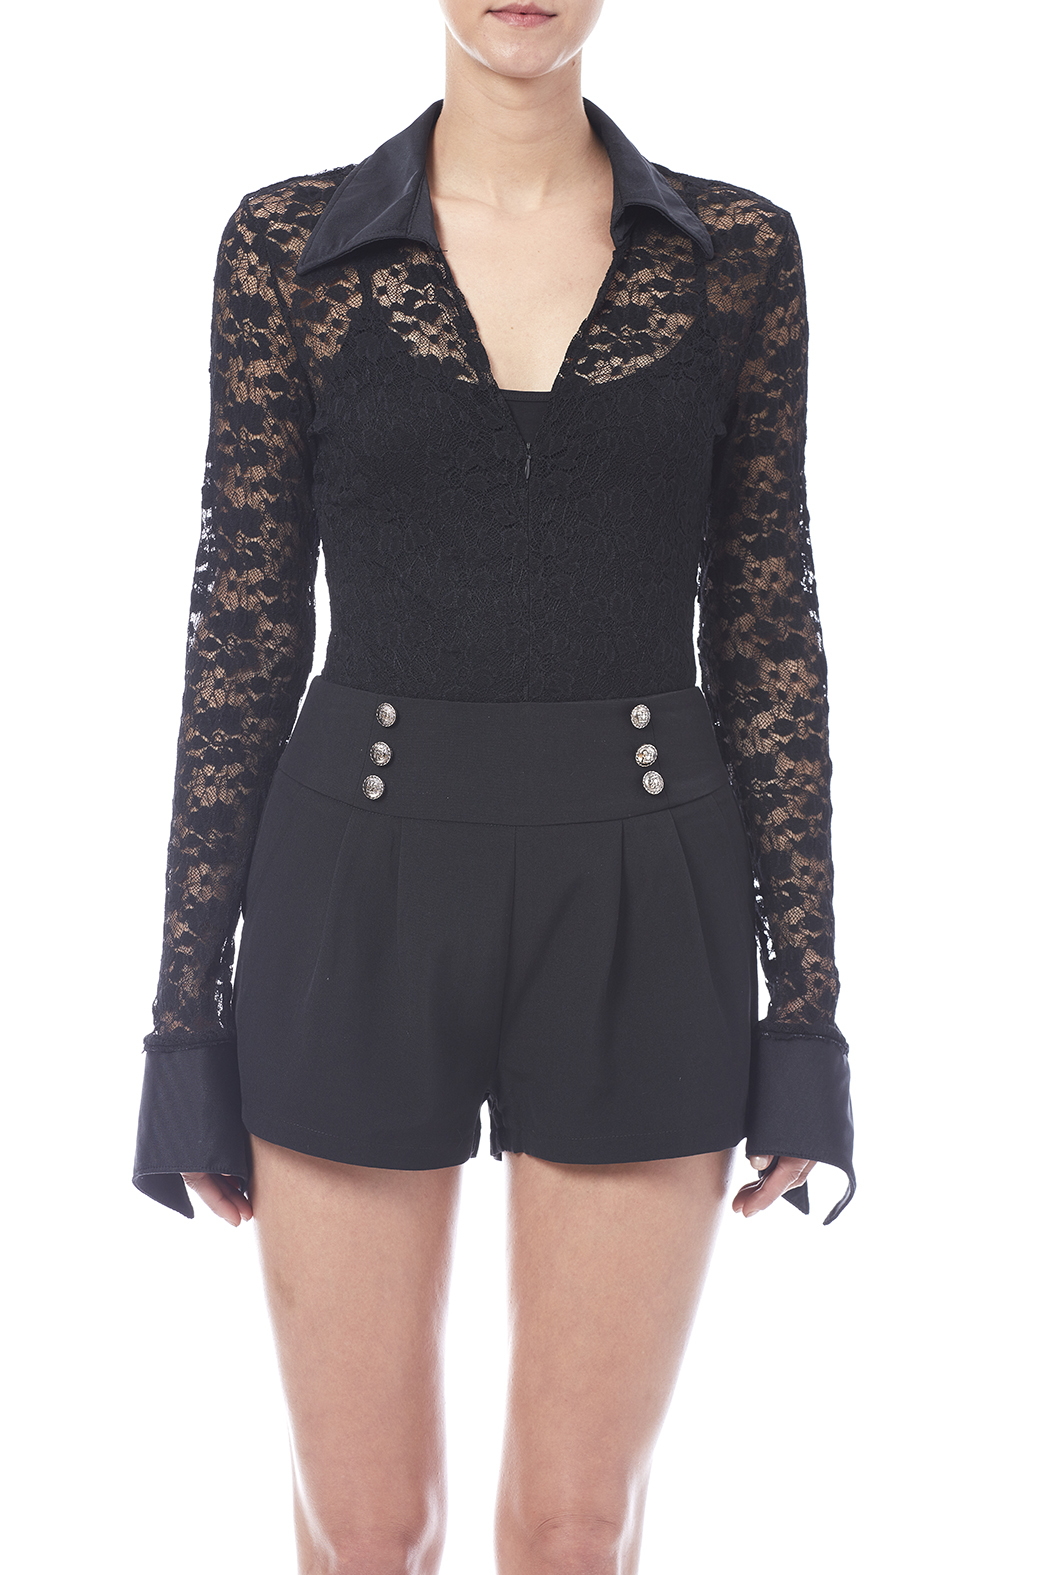 tu-anh boutique Black Lace Bodysuit - Side Cropped Image